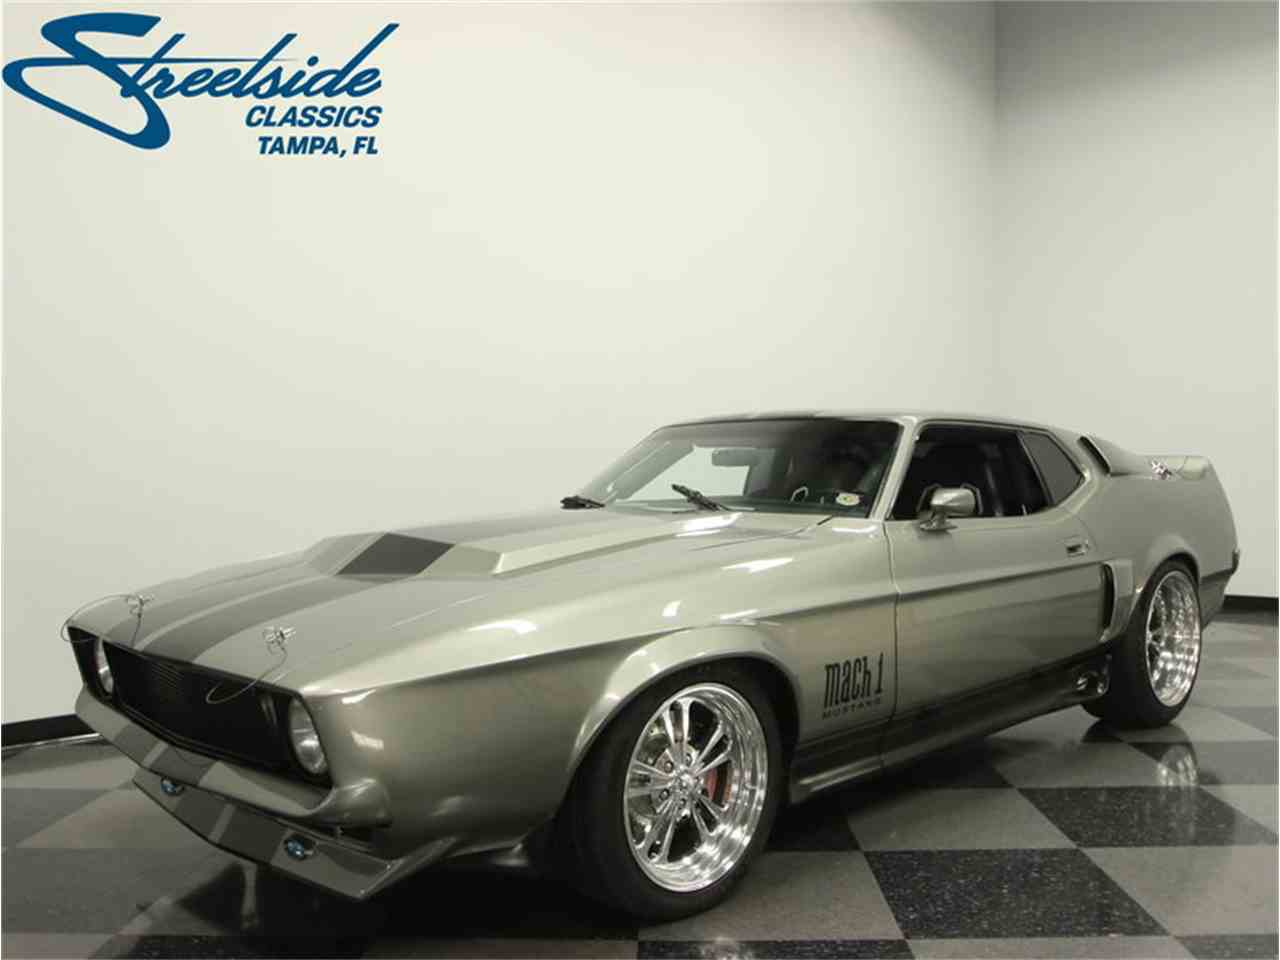 1971 Ford Mustang Fastback Restomod for Sale - CC-1047812